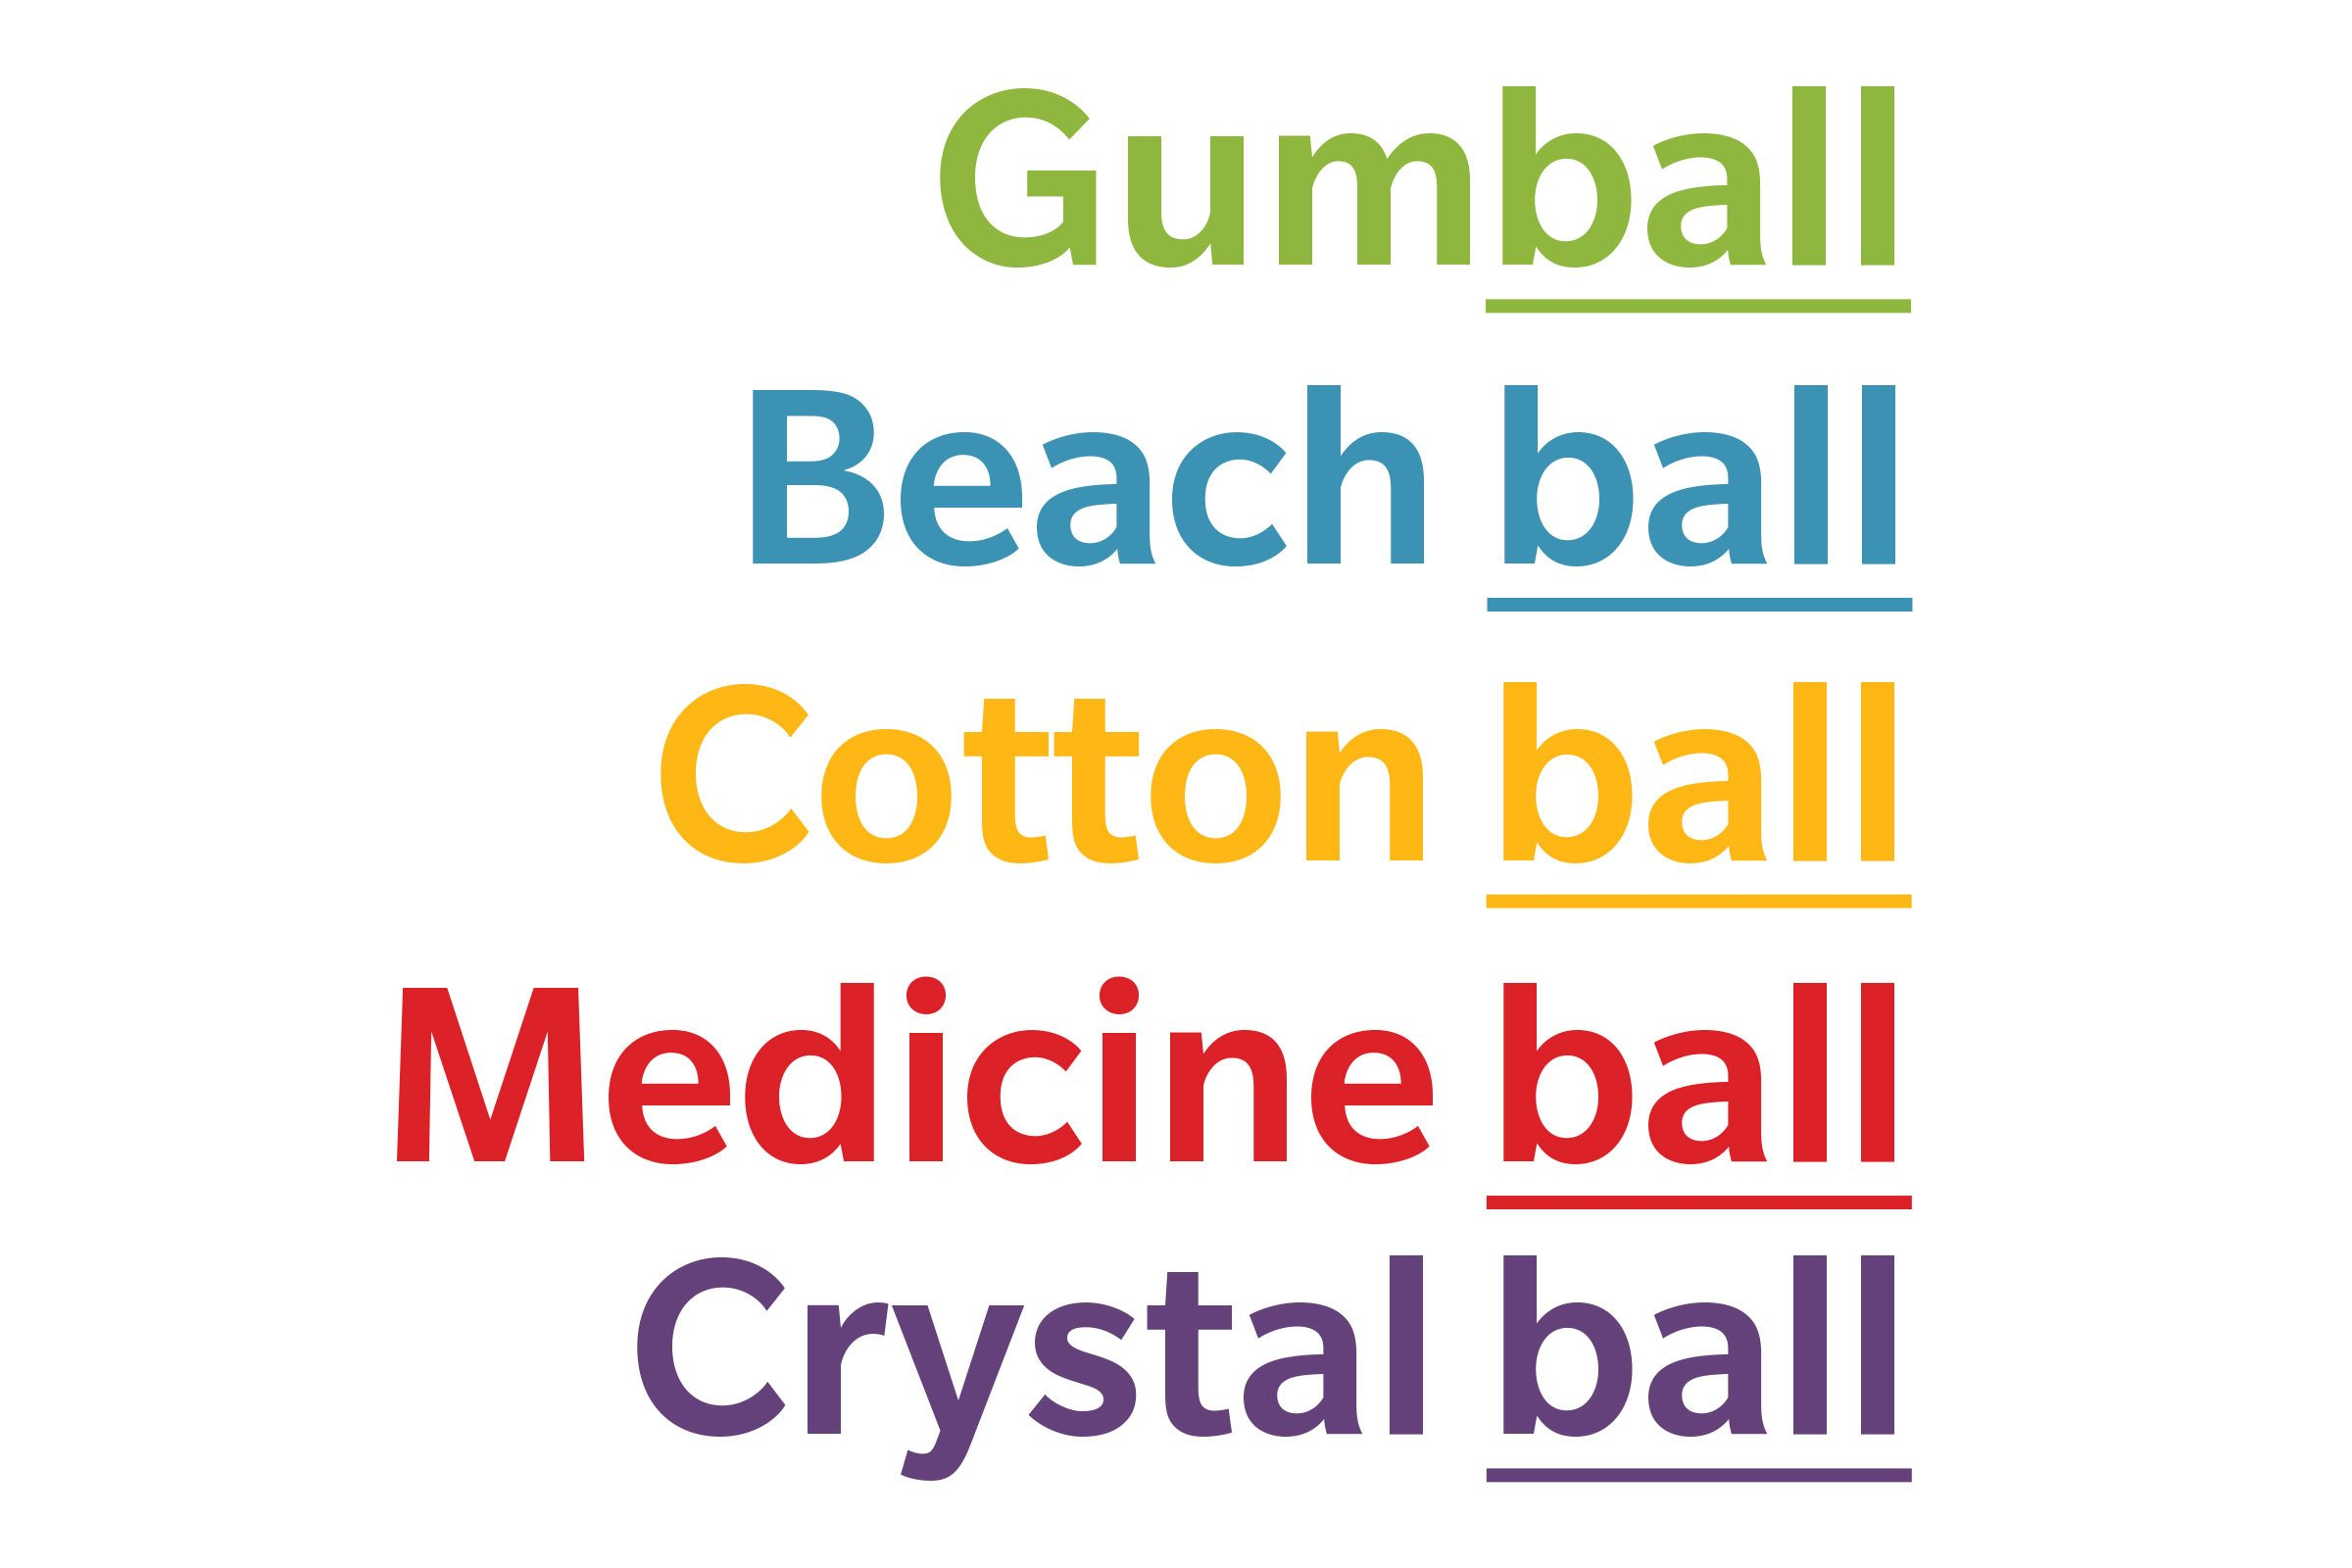 text: gumball, beach ball, cotton ball, medicine ball, crystal ball